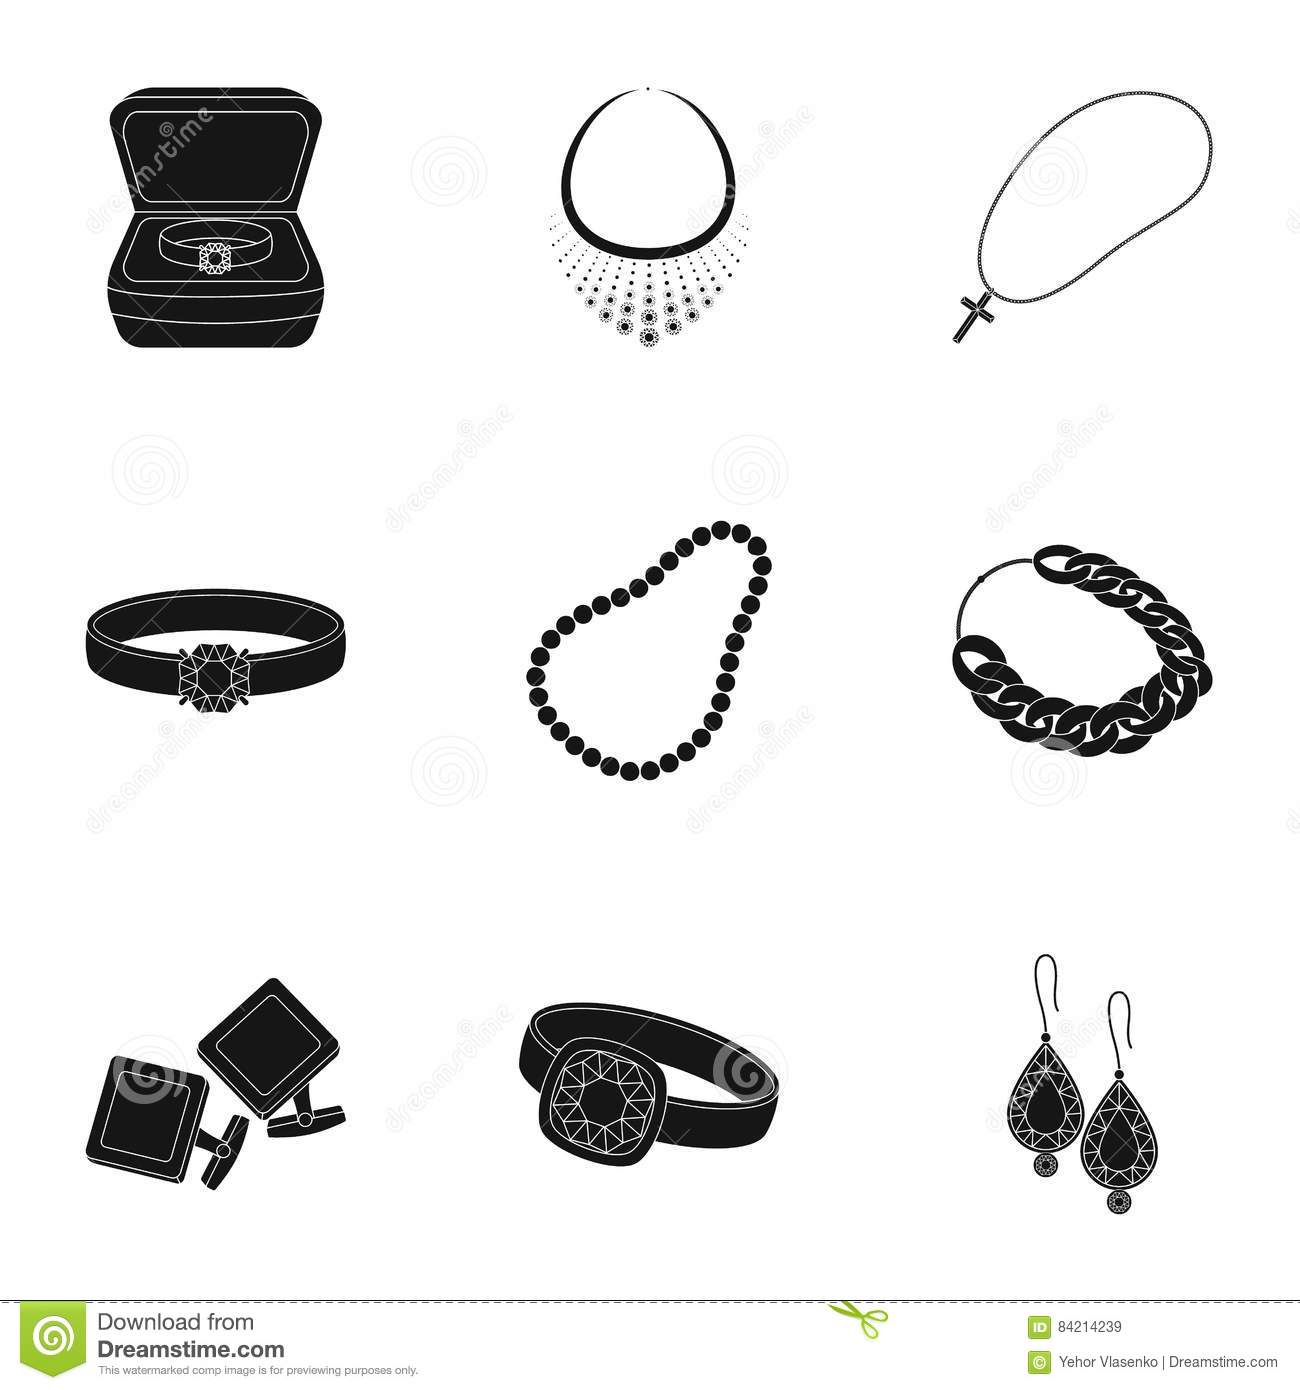 Wedding ring 3 furthermore Silver Square Gem Ornament White 1584973 together with Mohs Scale also String of pearls vector additionally Steven Universe Coloring Pages. on black pearl gem